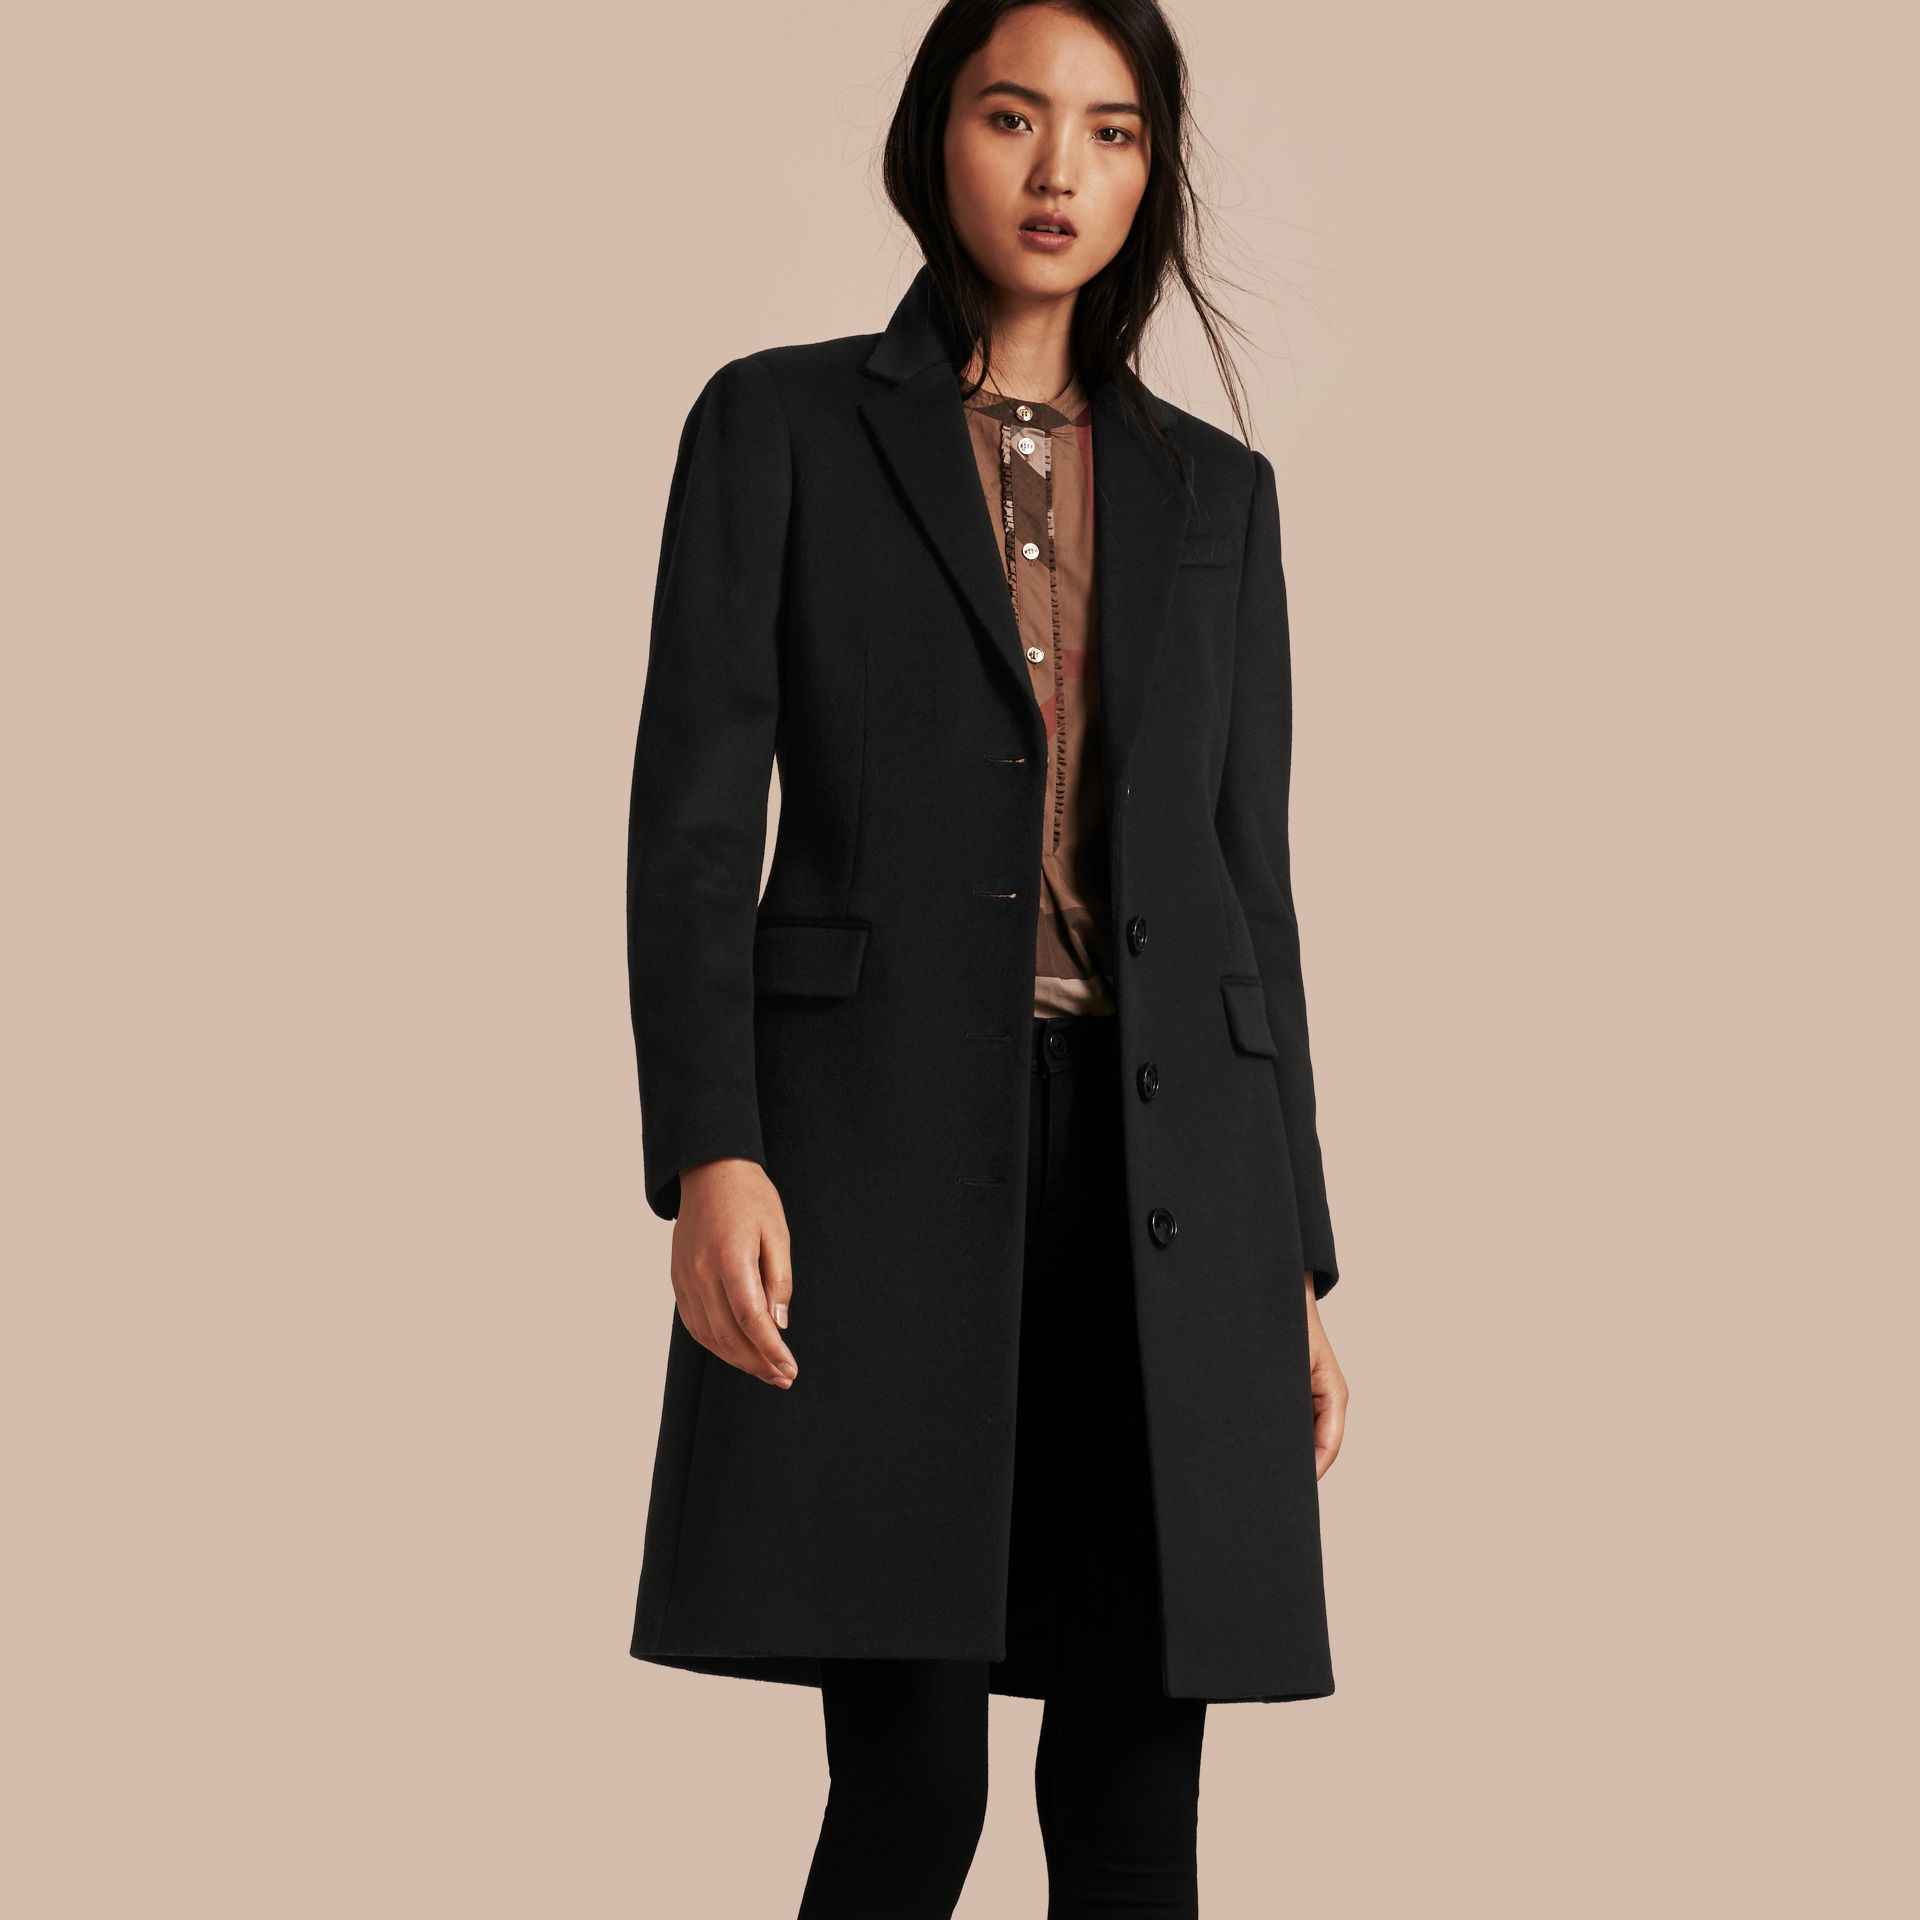 Black Tailored Wool Cashmere Coat Black - gallery image 1